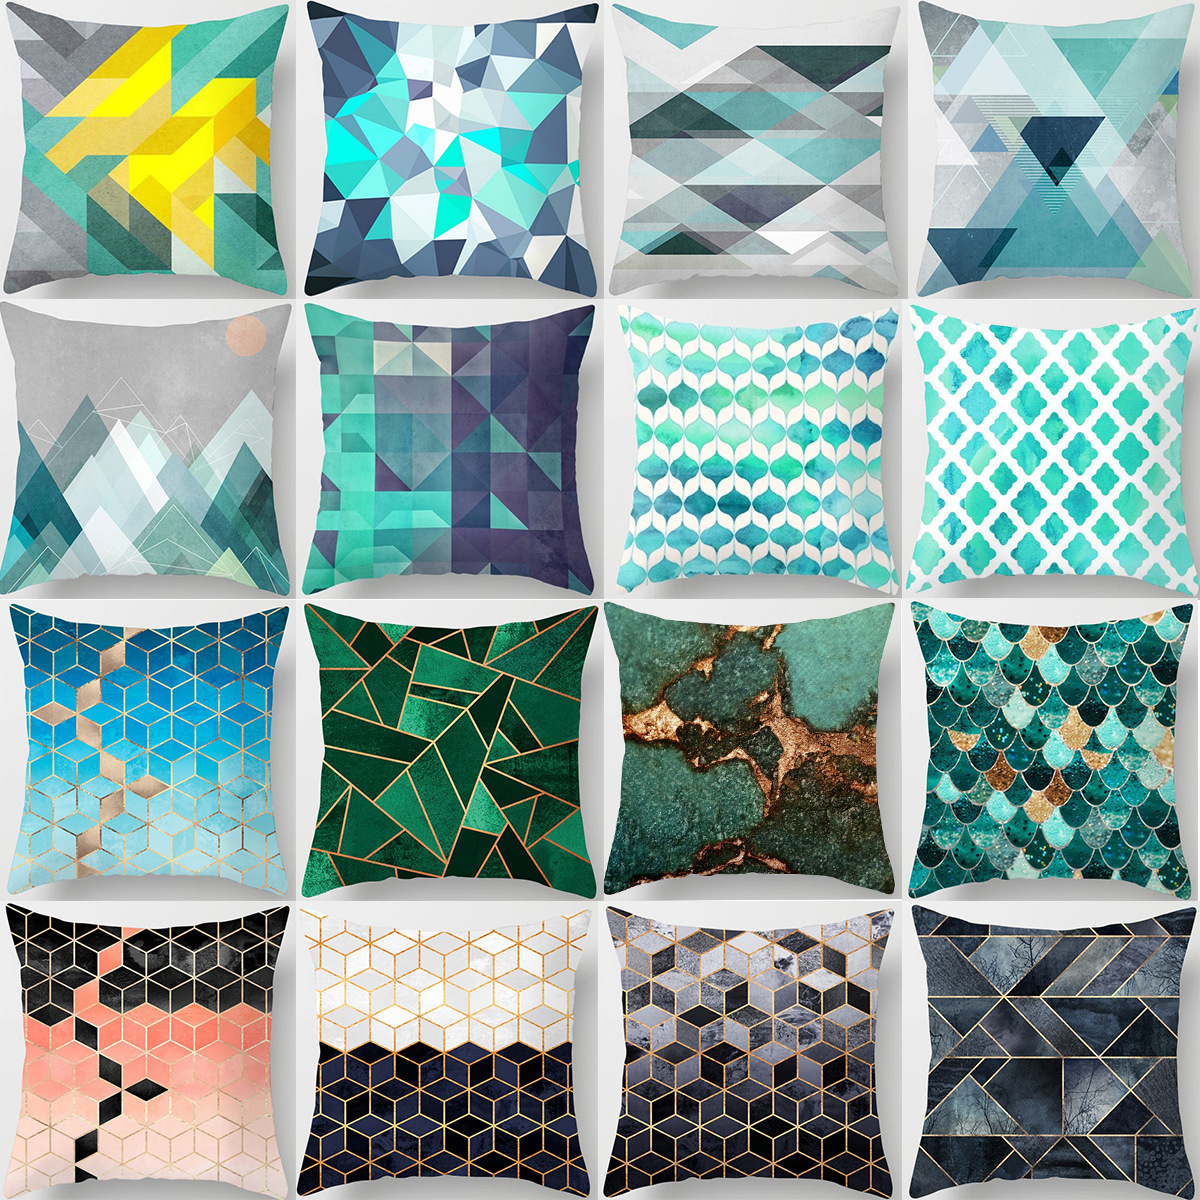 Fashion Decorative CushionsGeometric Abstract Pattern Throw Pillows Car Home Decor Cushion No Filling Decor Cojines DRD28